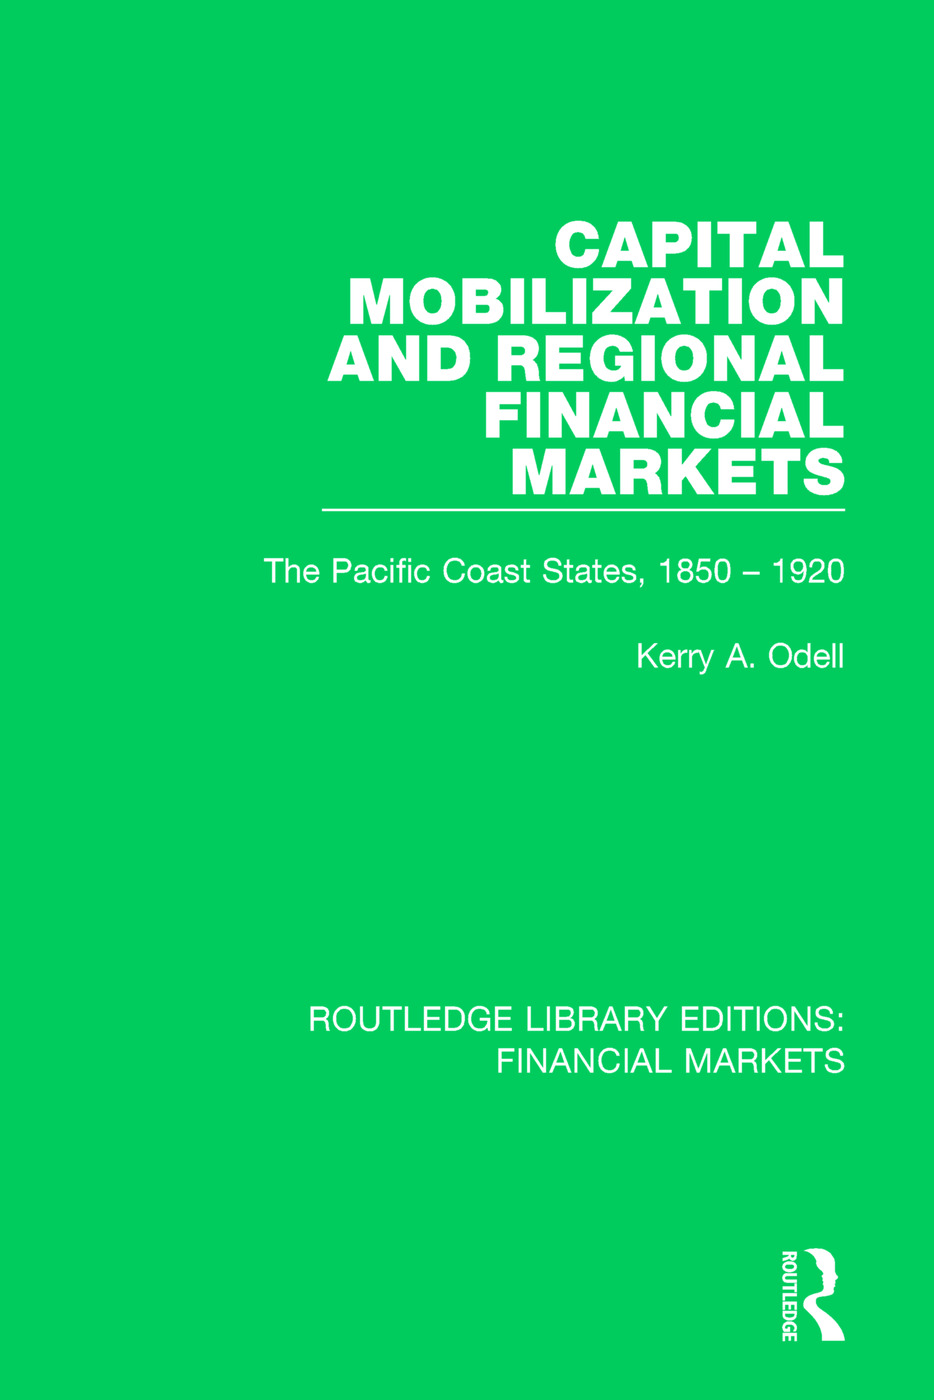 Capital Mobilization and Regional Financial Markets: The Pacific Coast States, 1850-1920 book cover